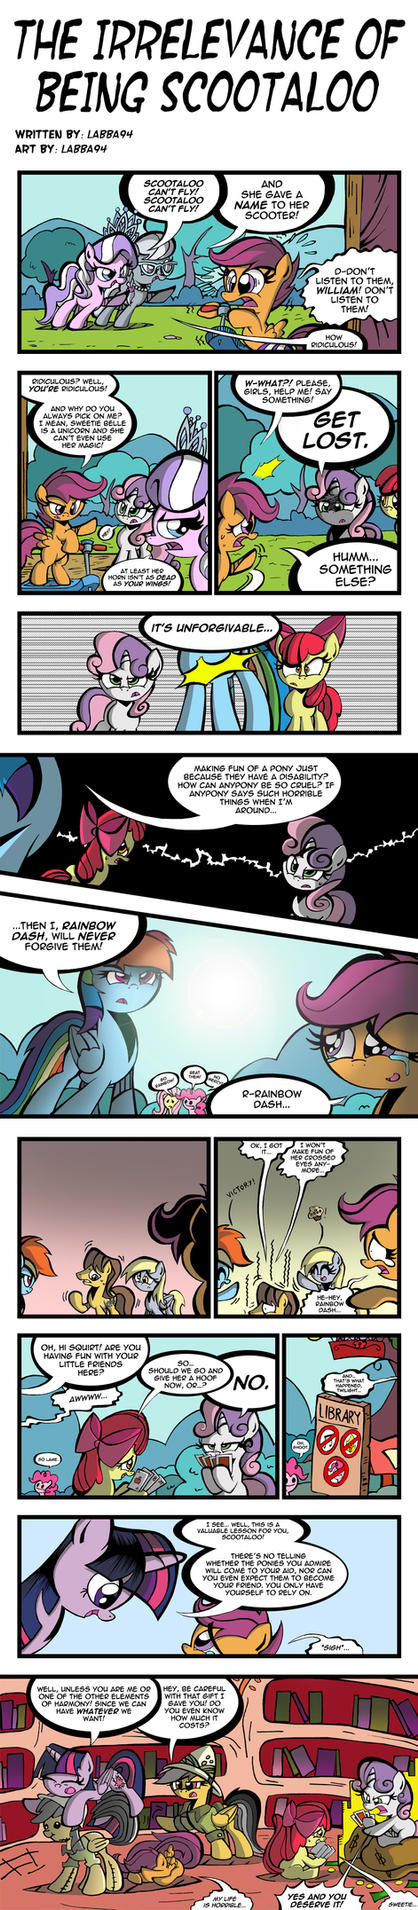 The Irrelevance of Being Scootaloo by labba94